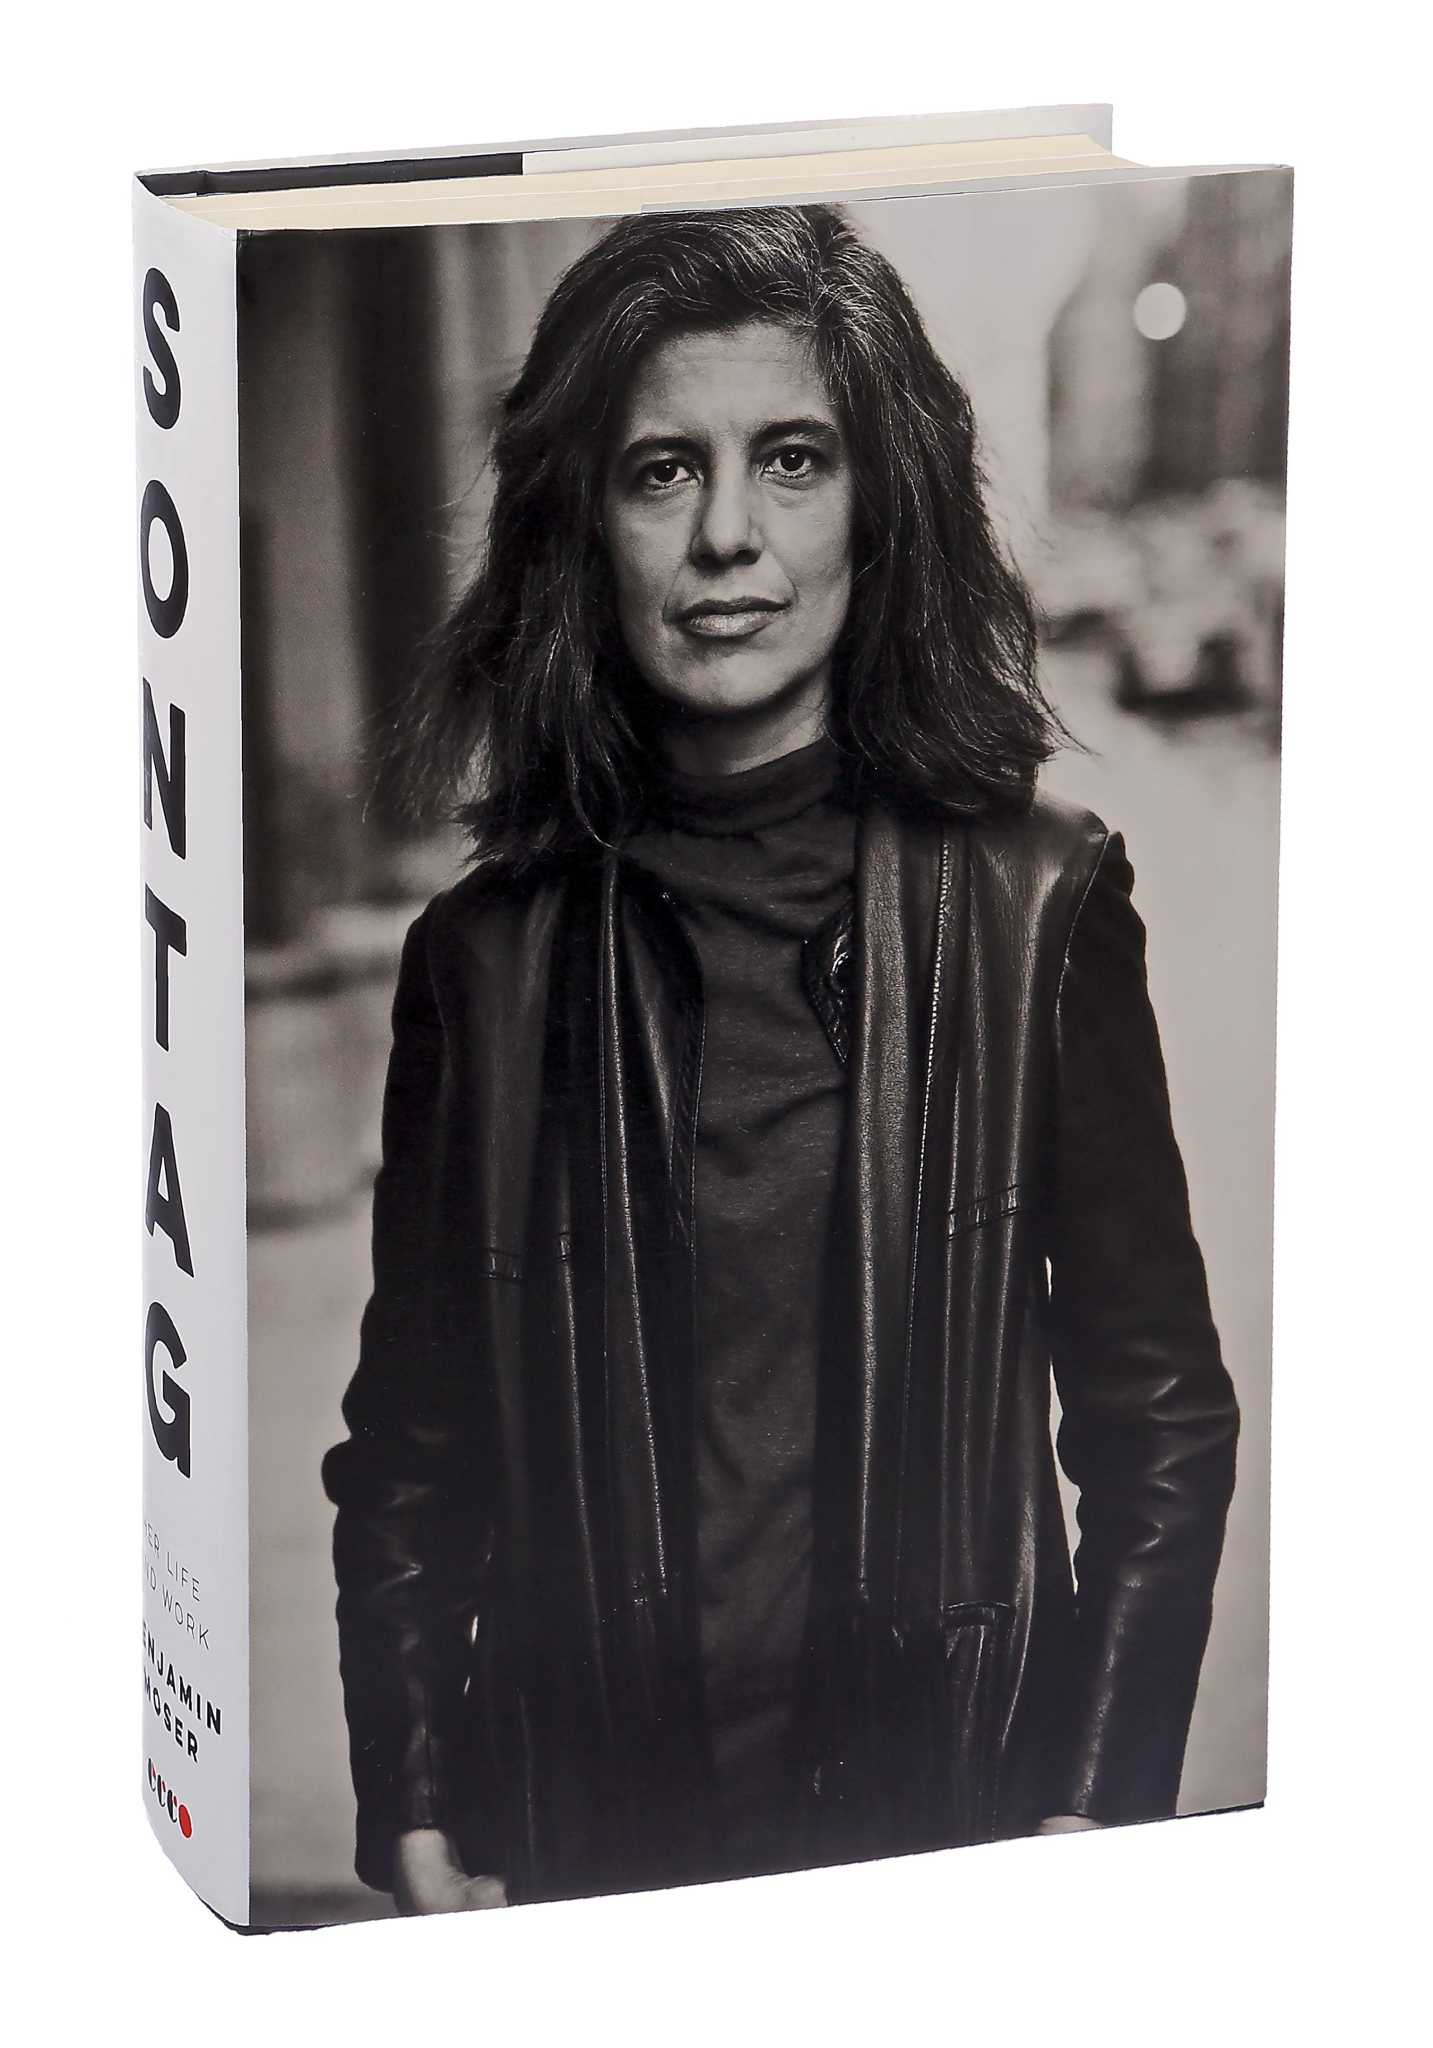 Houston-born Susan Sontag biographer looks for the full picture